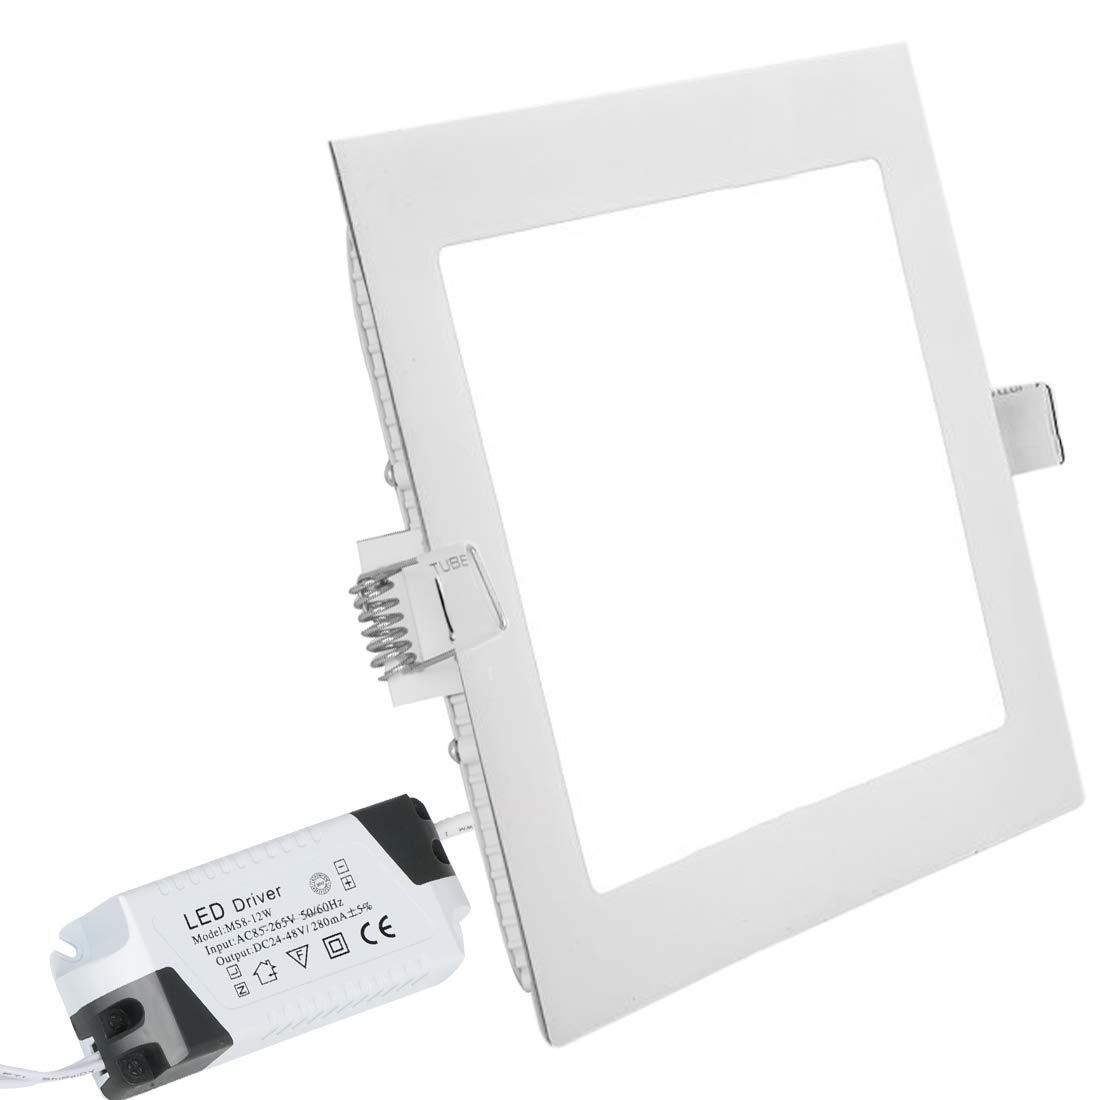 18W 900LM Square Led Recessed Lighting Panel Light 6000k Ultra Thin Recessed Light Fixtures Ceiling Lights for Bathroom Kitchen Basement Living Room Dining Room Corridor Office Conference Room